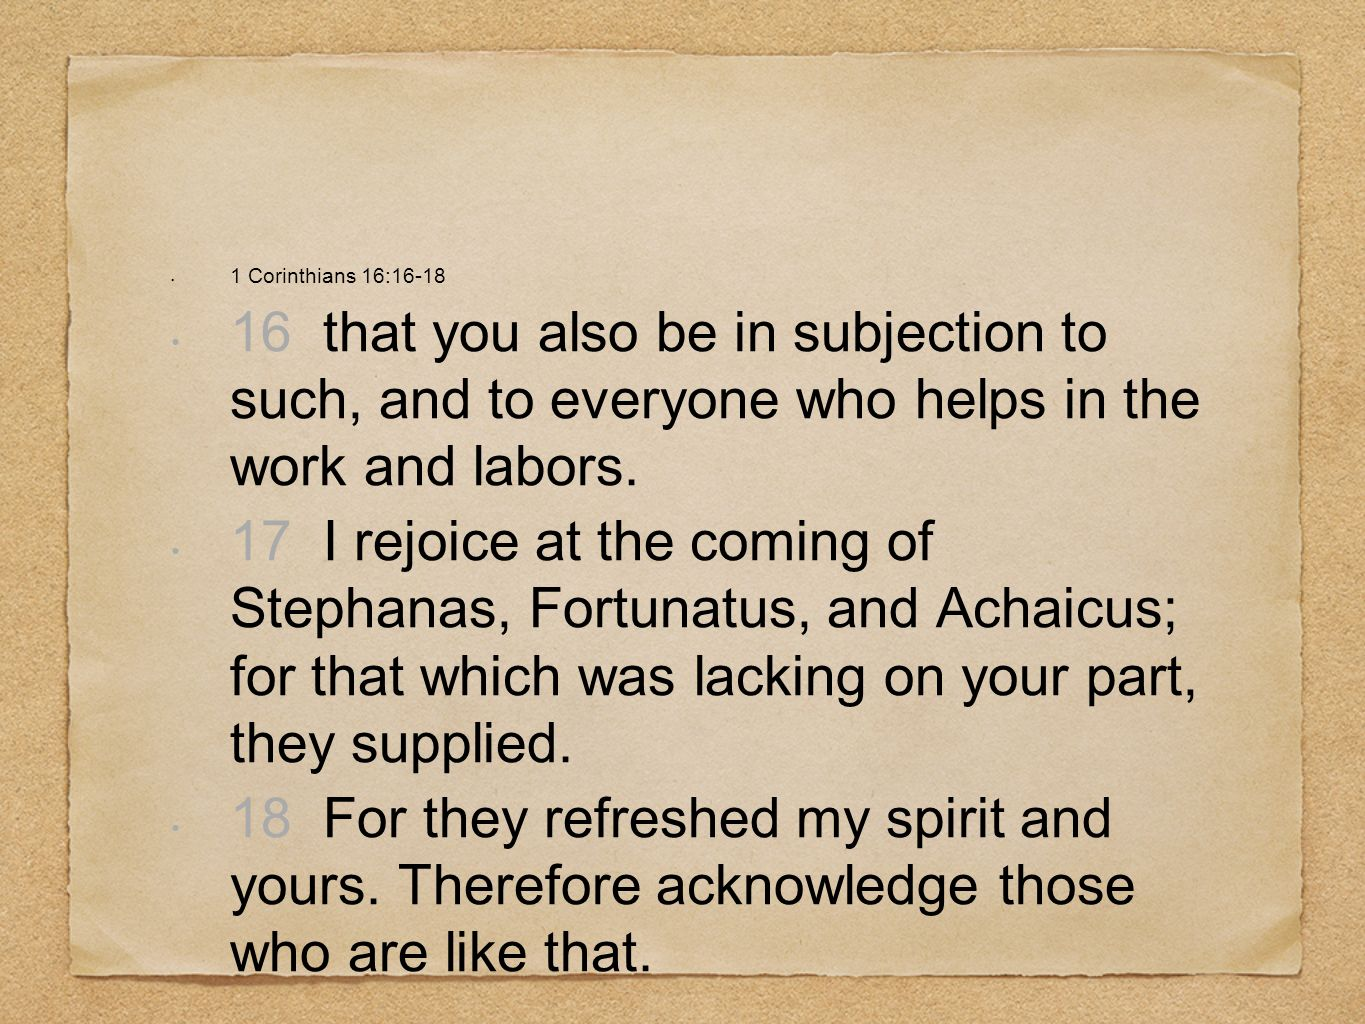 1 Corinthians 16: that you also be in subjection to such, and to everyone who helps in the work and labors.